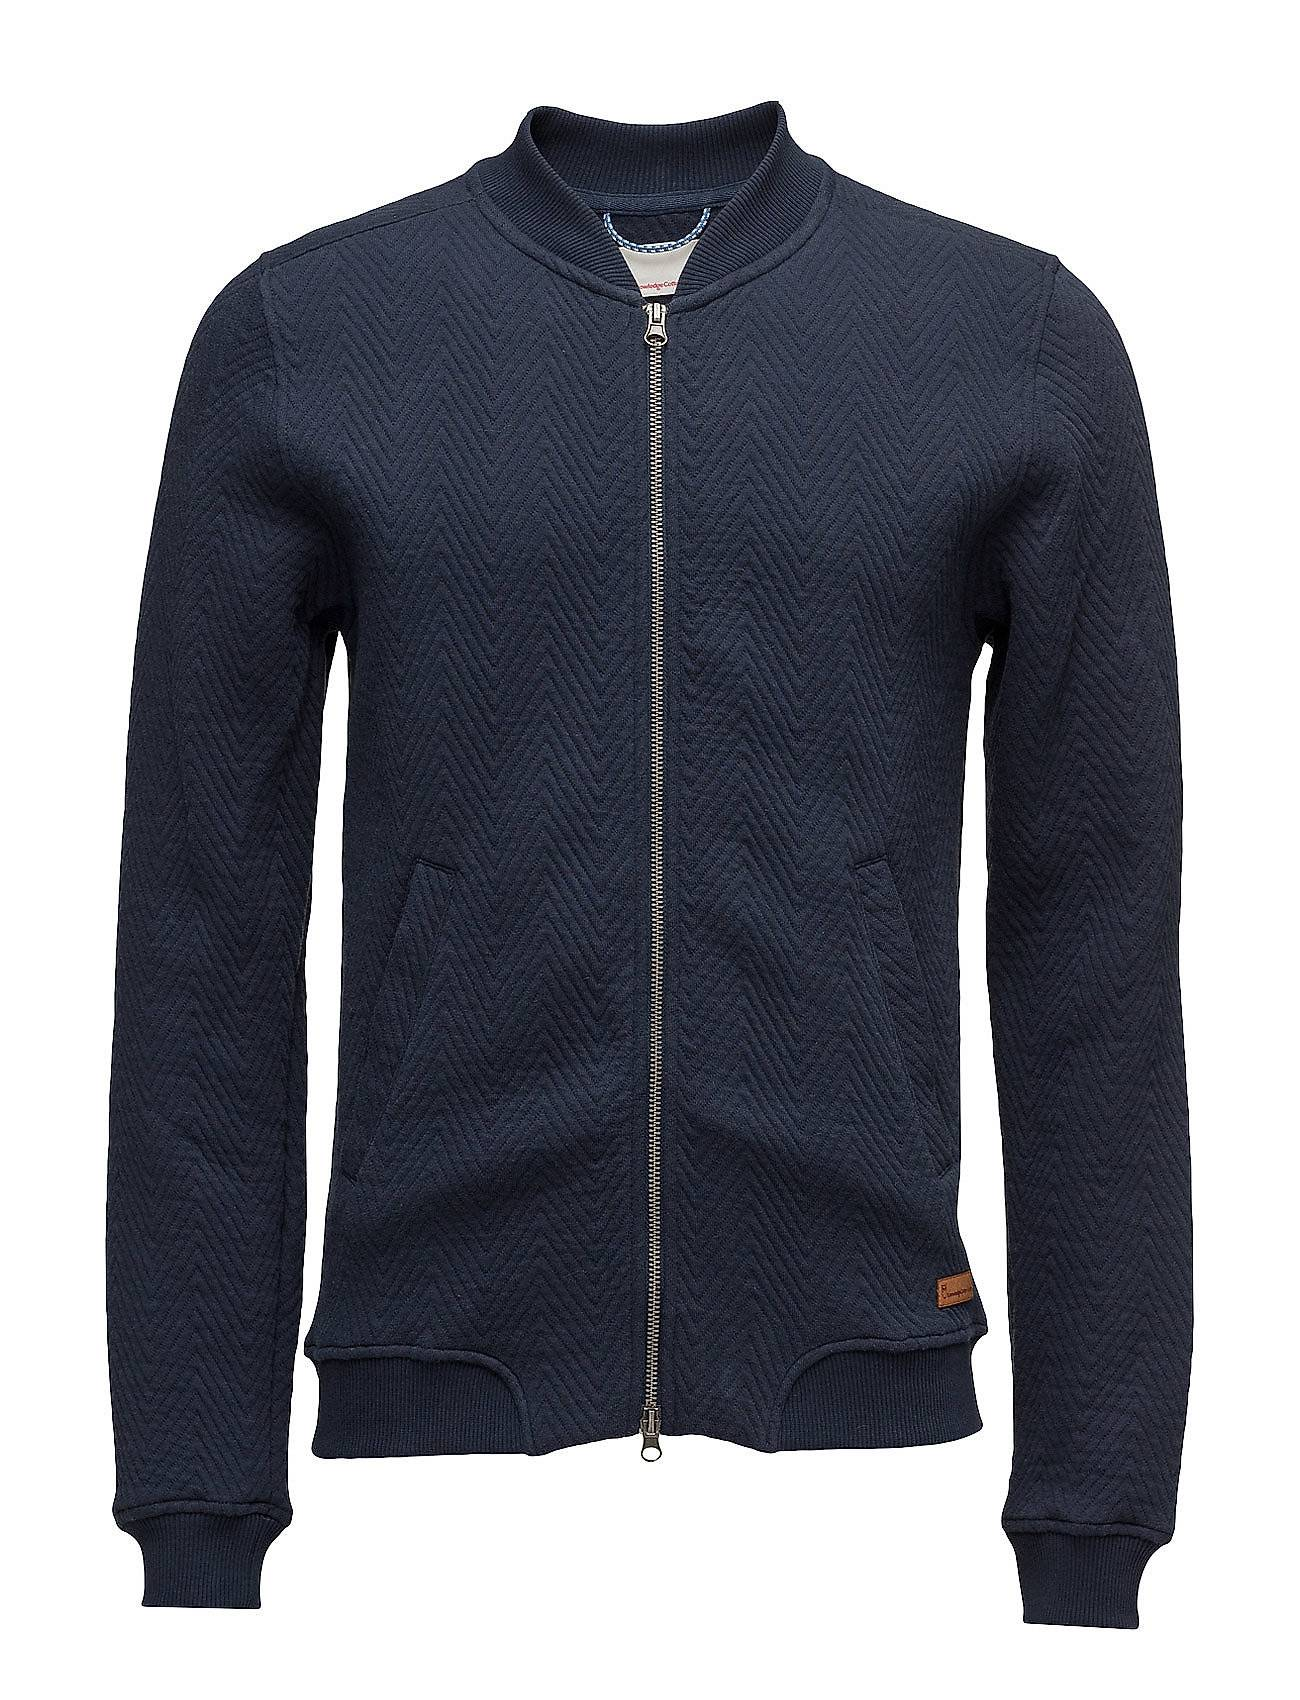 Knowledge Cotton Apparel Quilted Zip Cardigan - Ocs